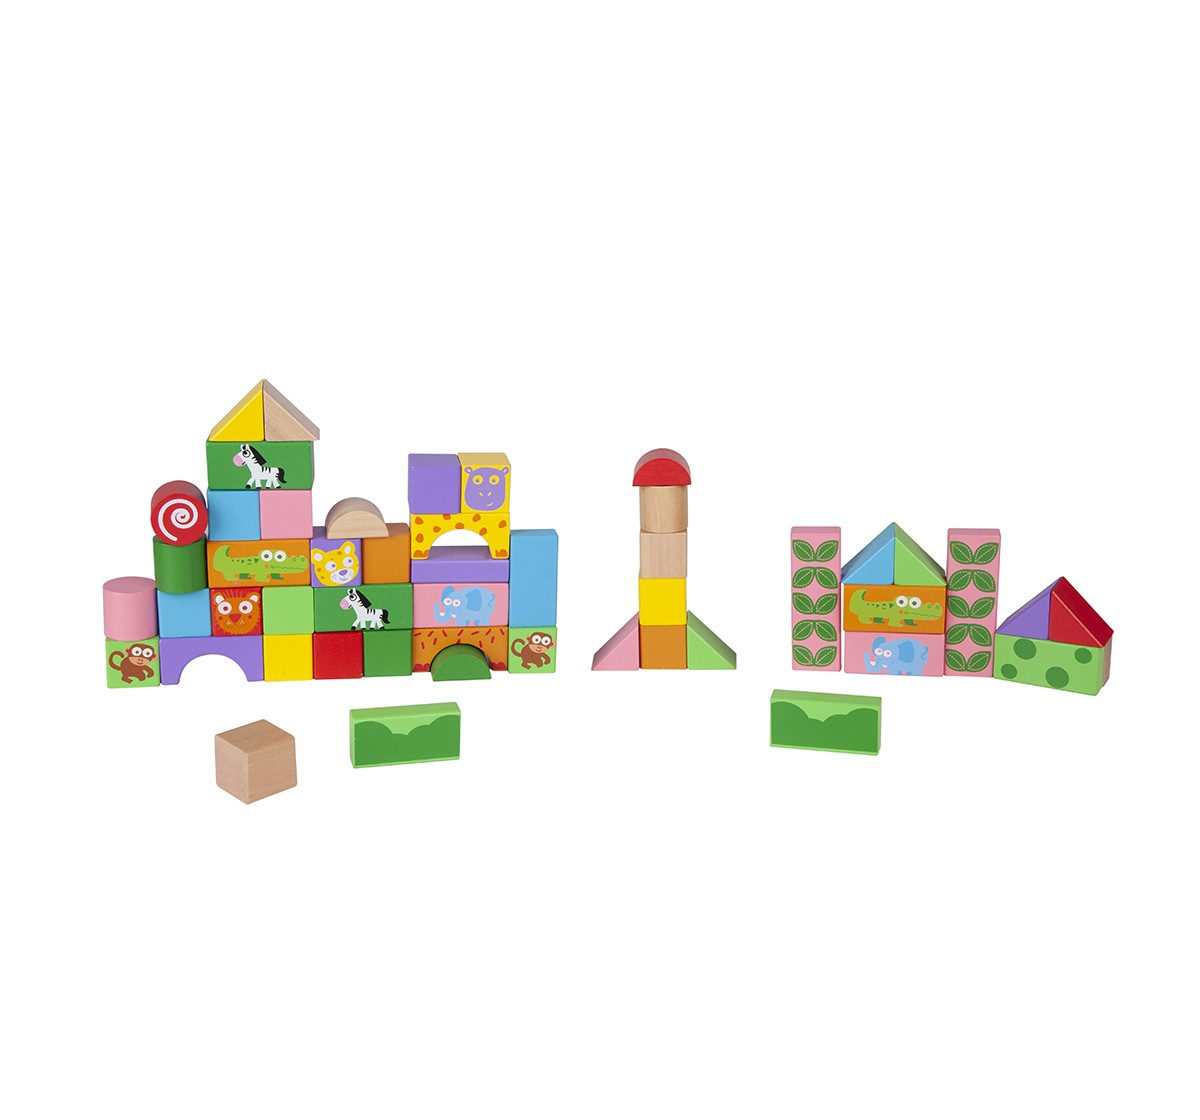 Shooting Star 50 PCS Wooden Blocks for Kids age 3Y+